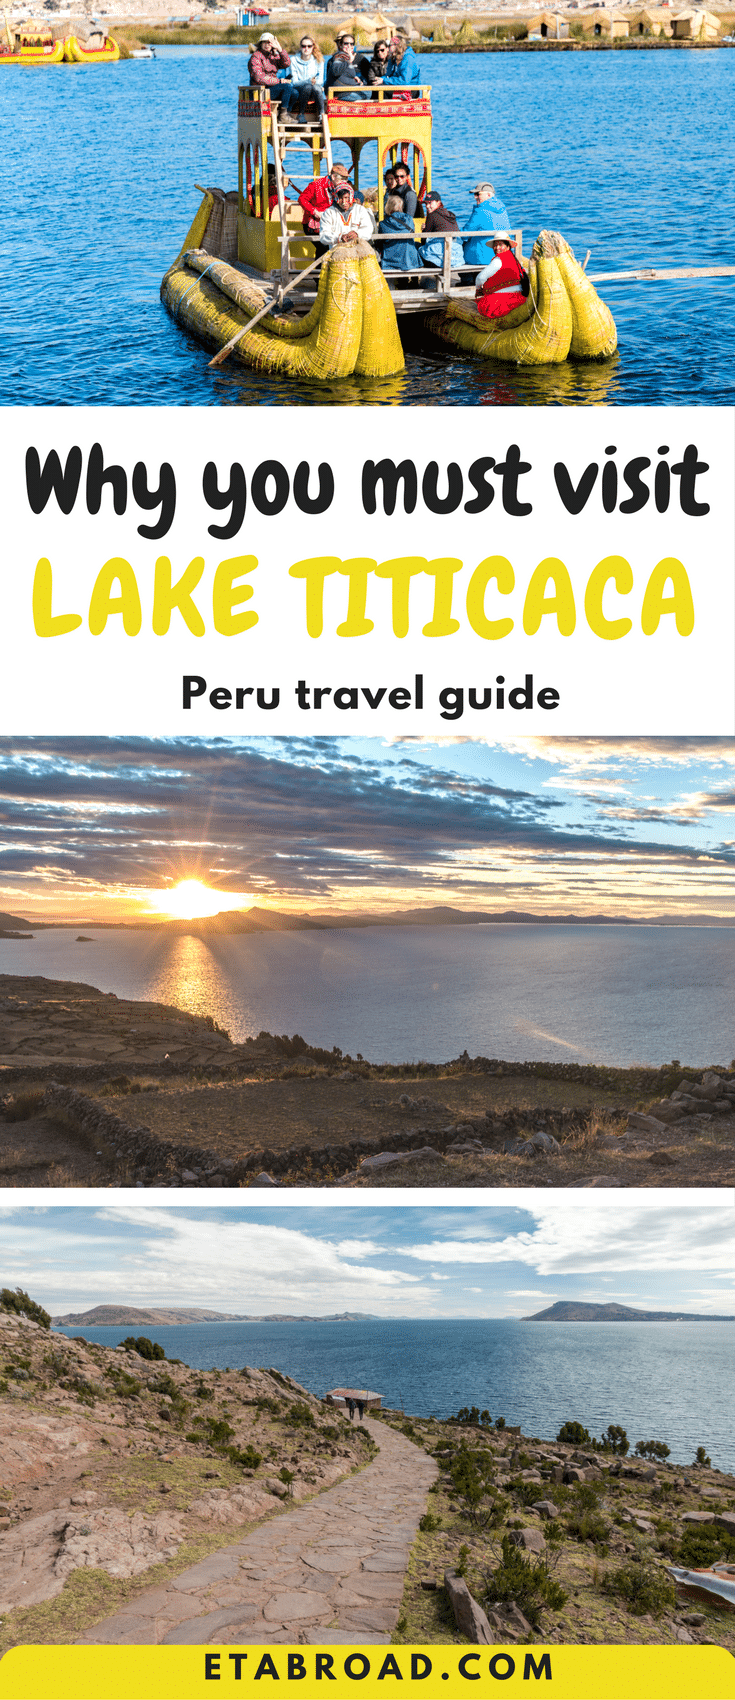 Why you must Lake Titicaca